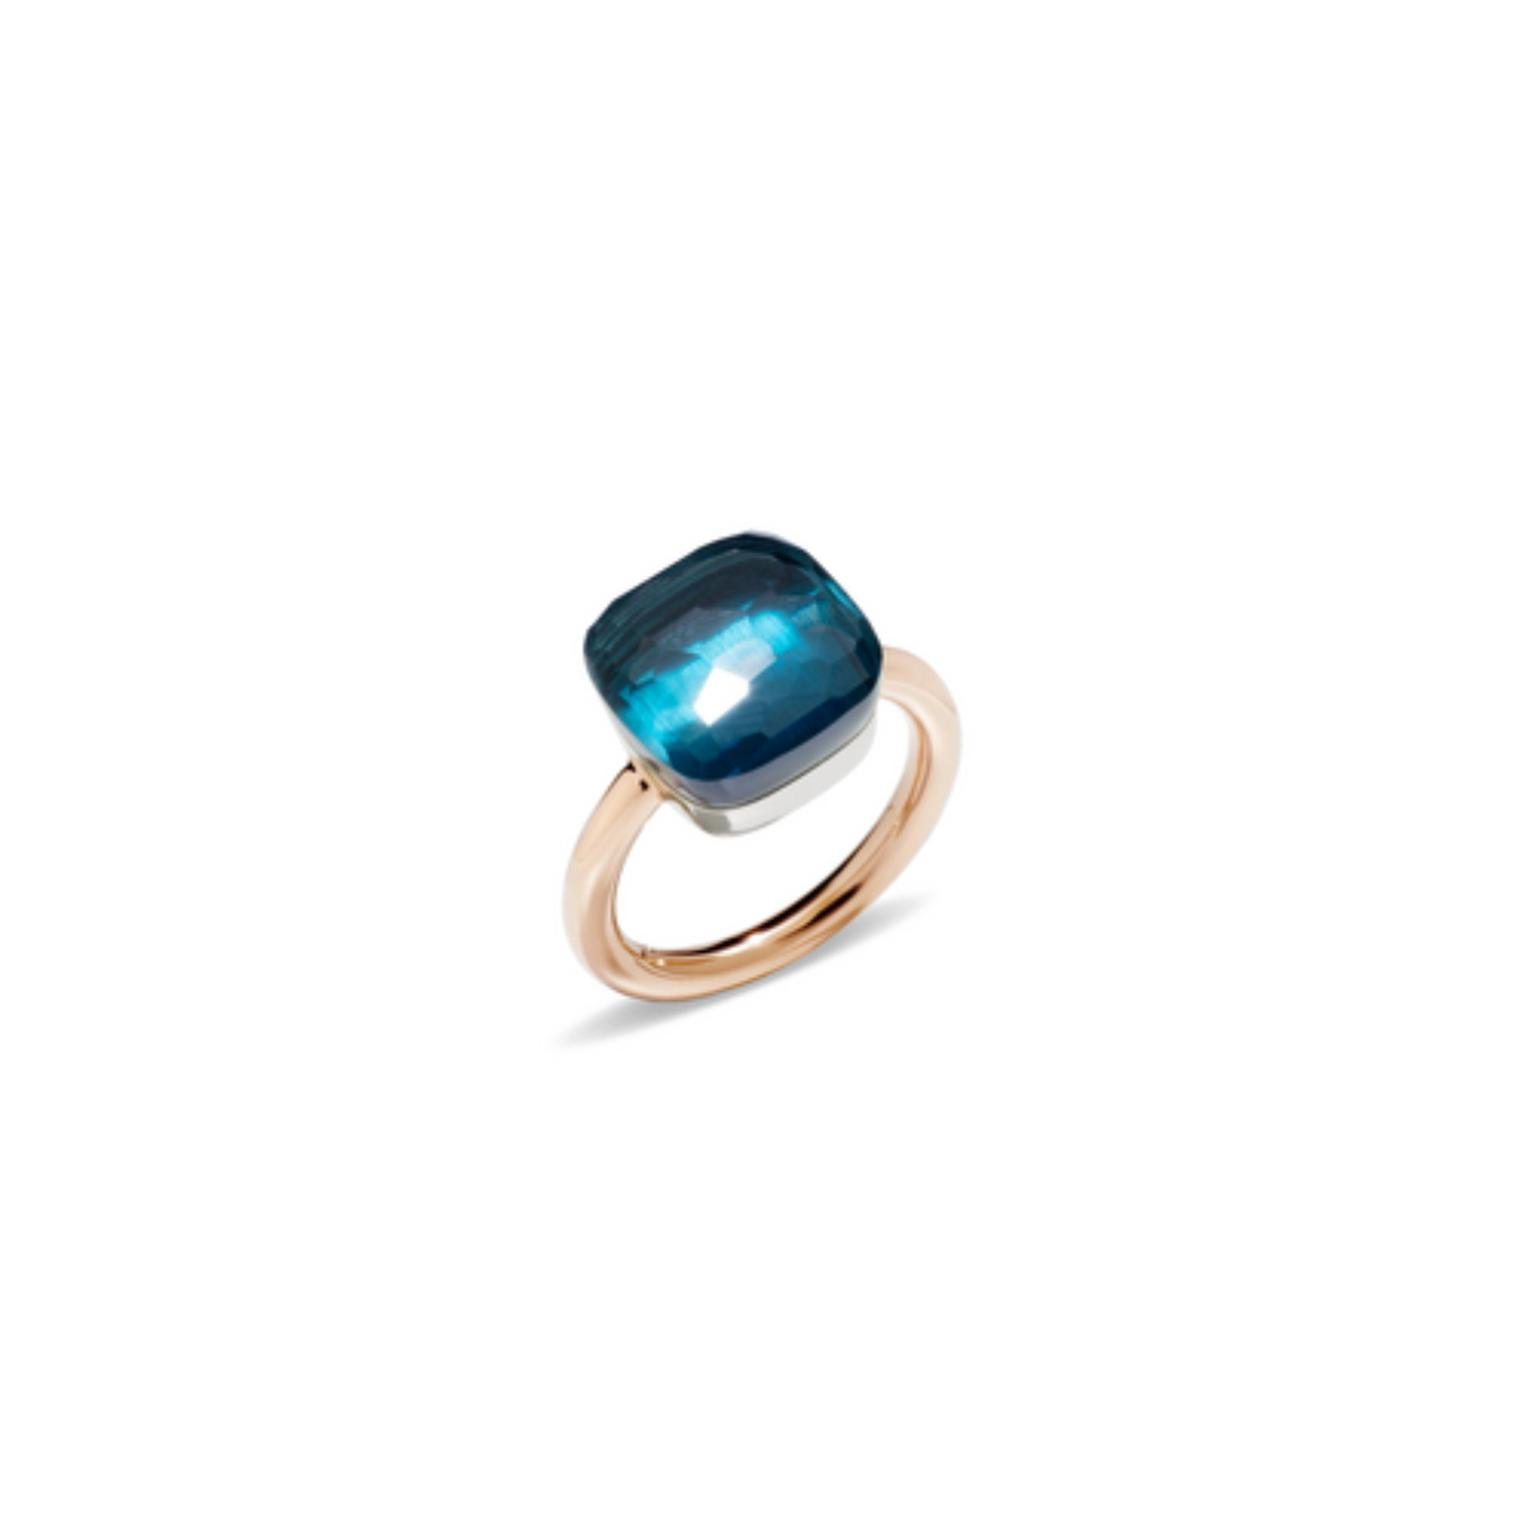 Pomellato Blue London Topaz large ring